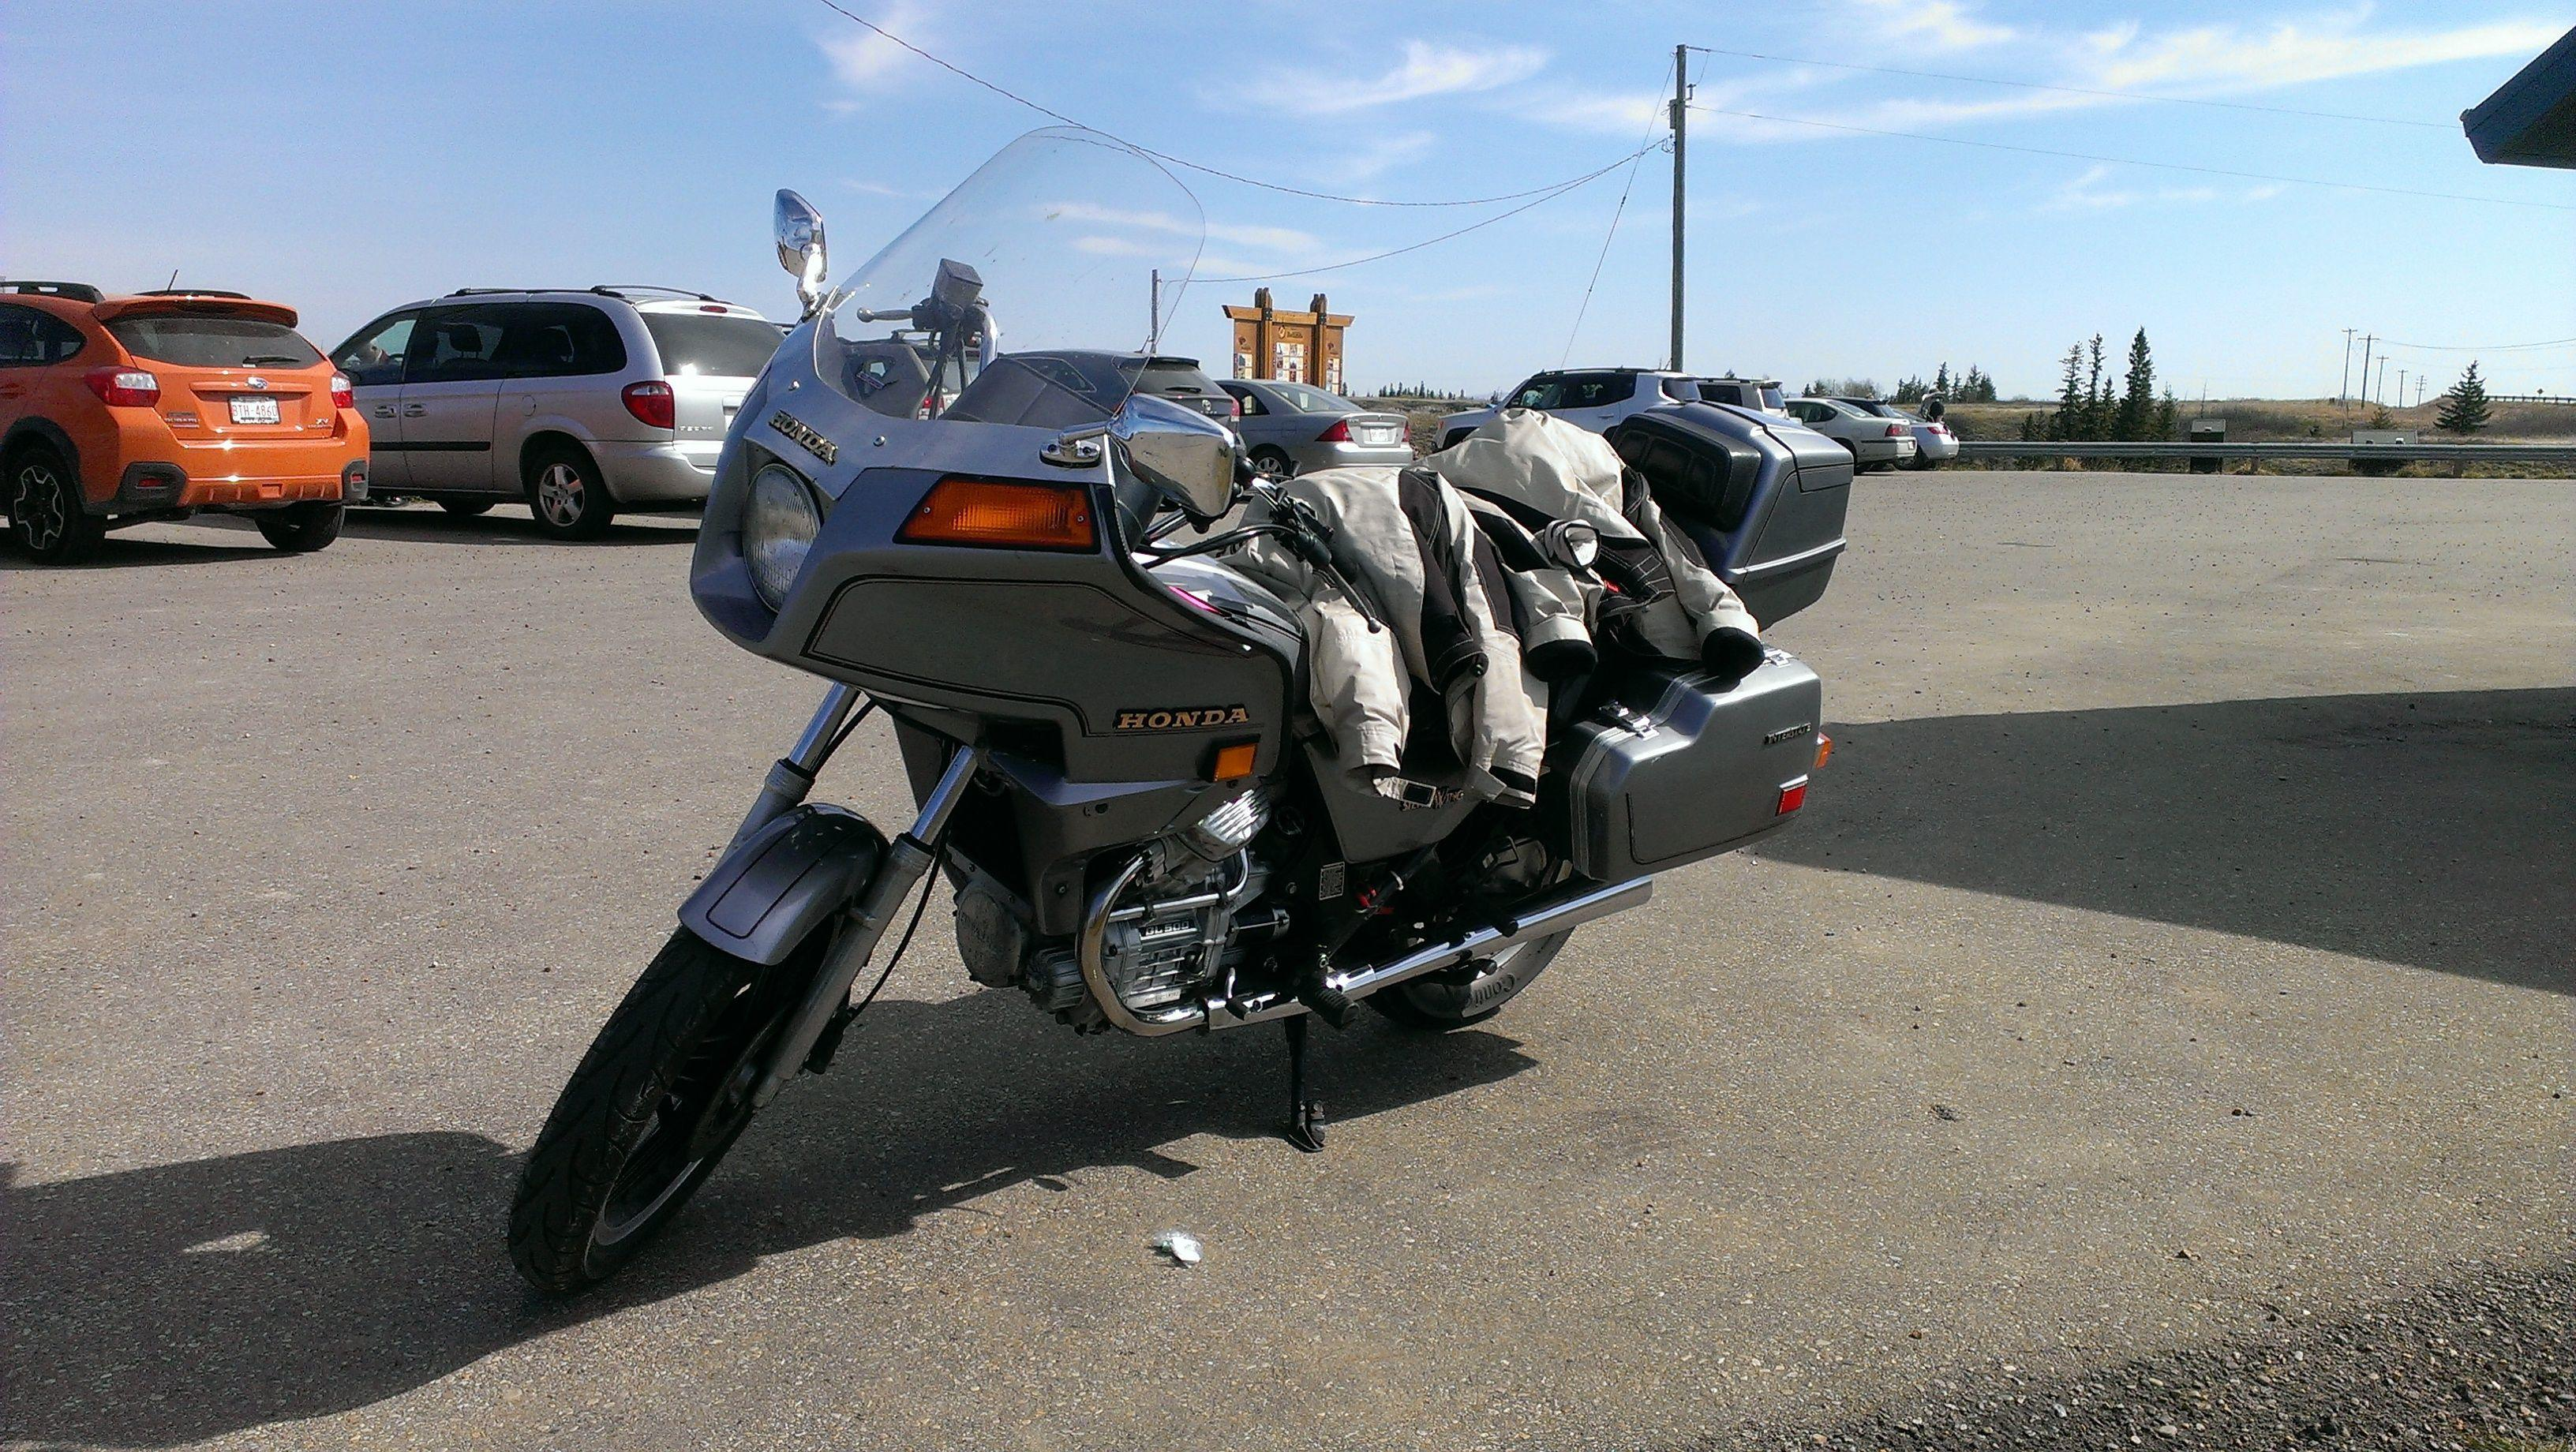 Honda Motorcycles Calgary >> Jens The Calgary Motorcycle Riders And Everything Else